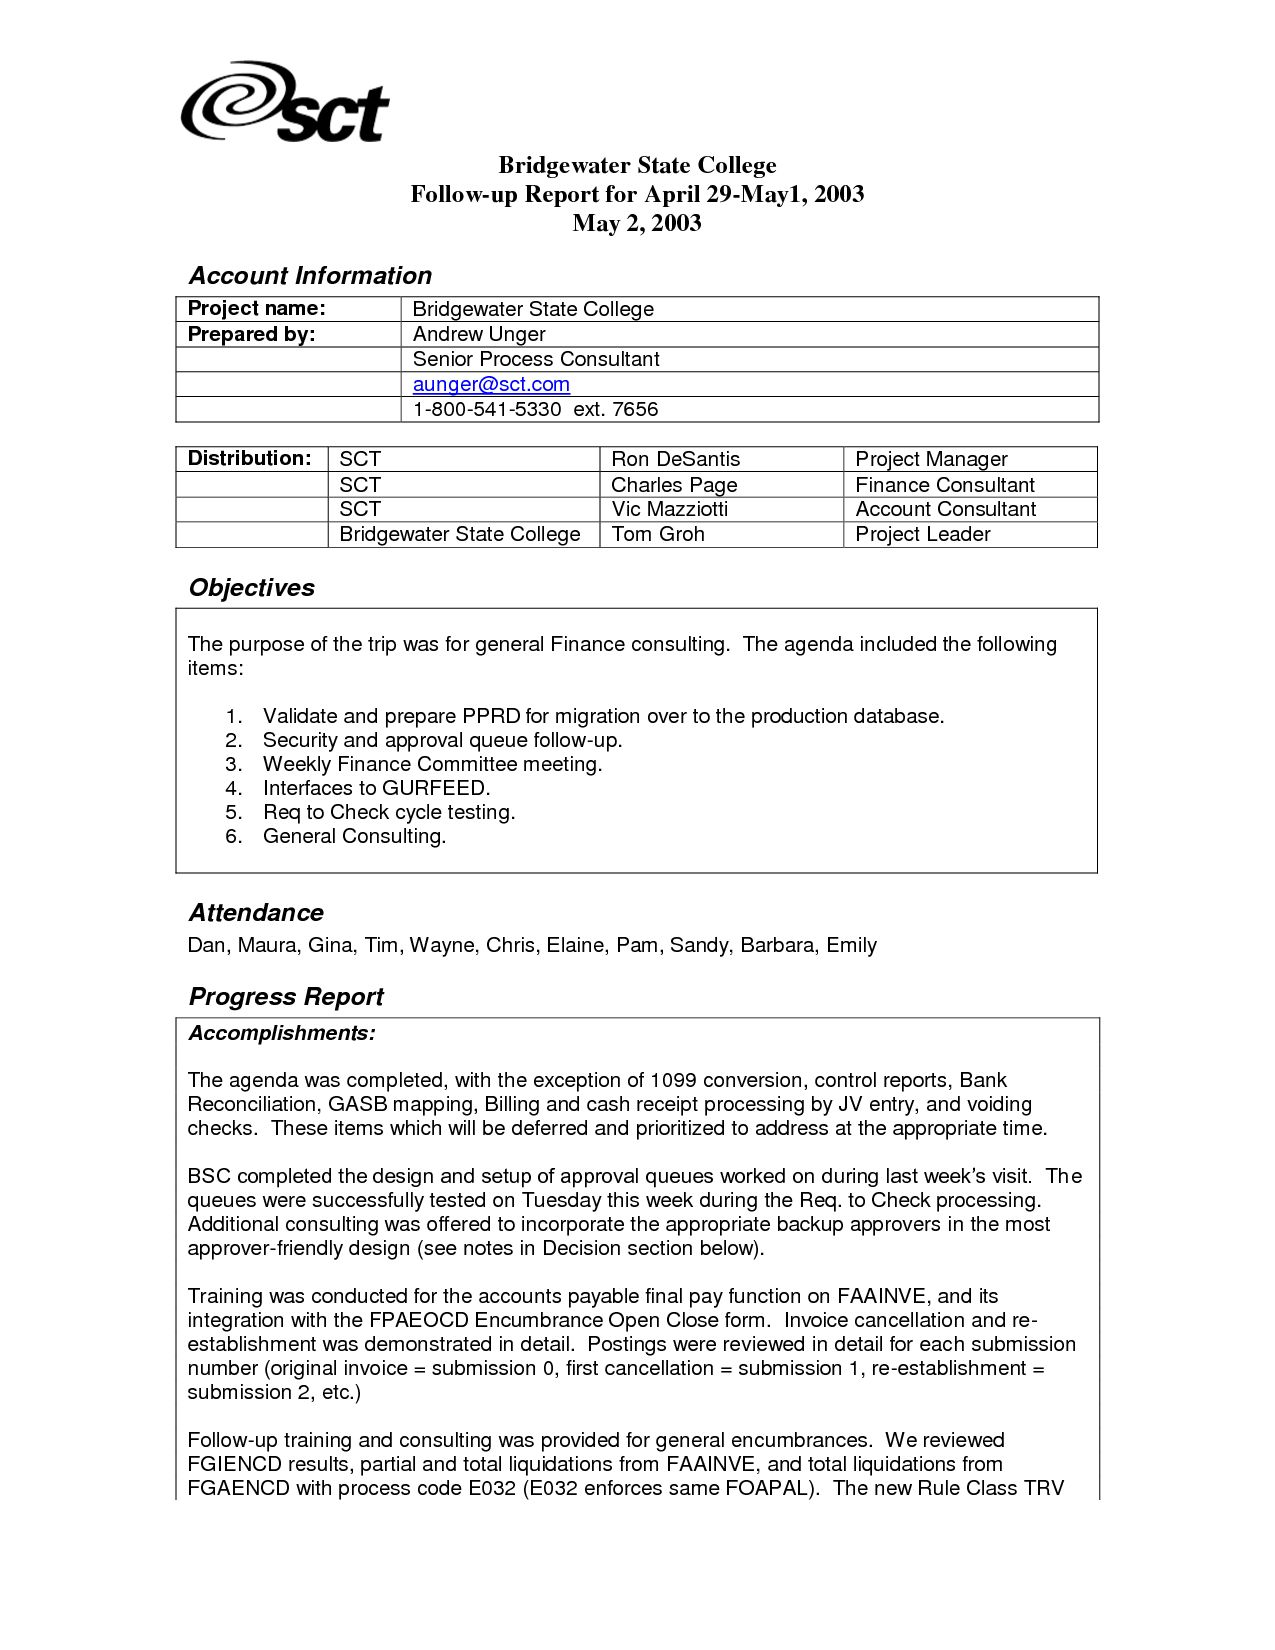 16 Business Travel Report Template Images Sample Business Pertaining To Business Trip Report Template Pdf Gre Travel Report Report Template Business Travel